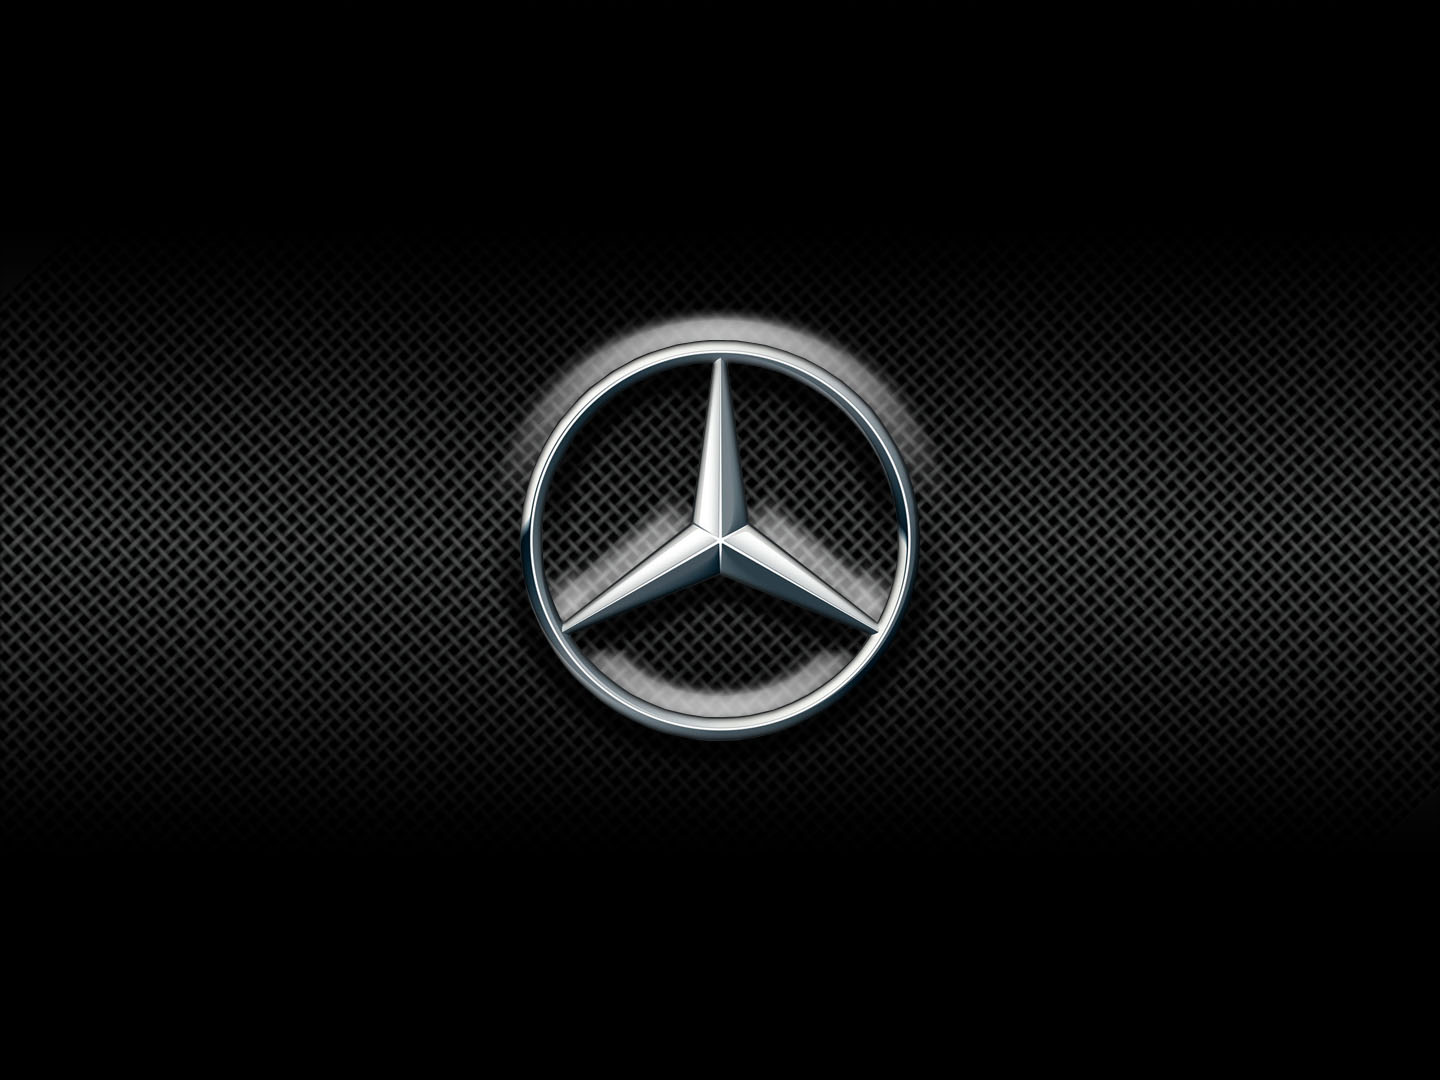 Mercedes Amg Logo Wallpaper Images Pictures   Becuo 1440x1080